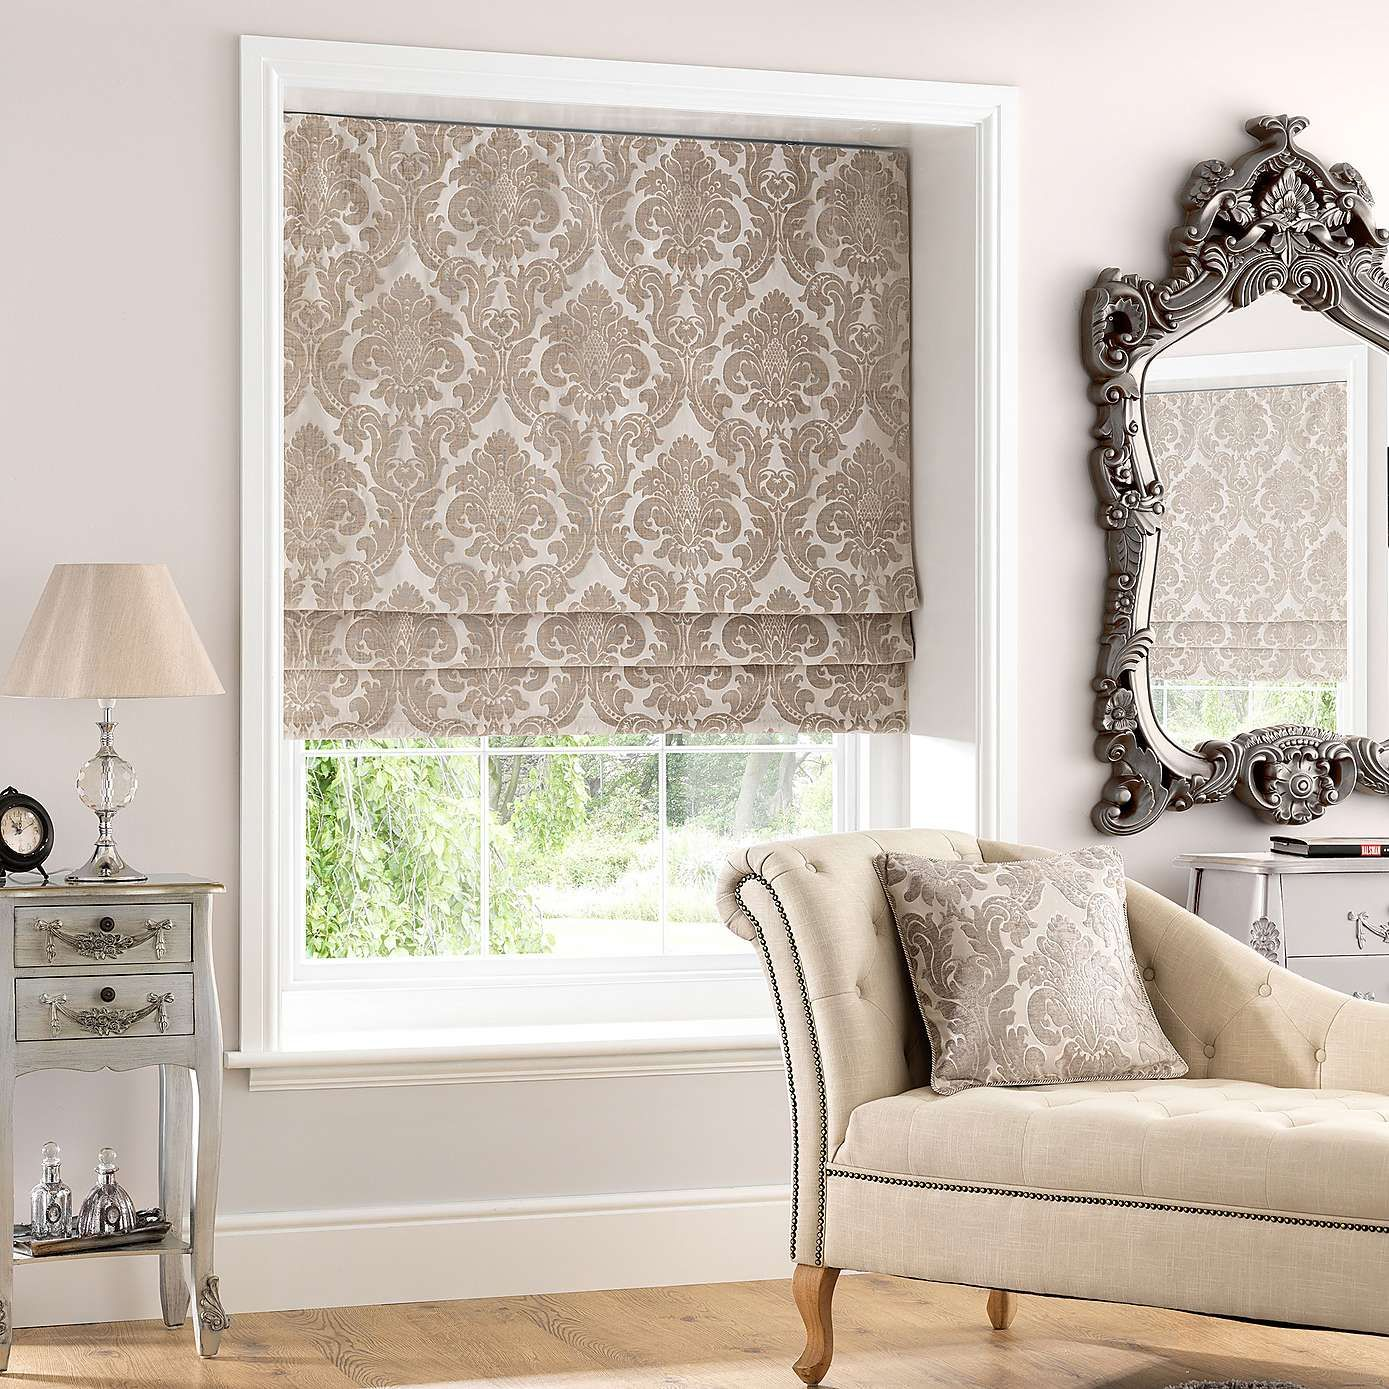 Versailles Natural Roman Blind Roman Blinds Living Room Curtains With Blinds Roman Blinds